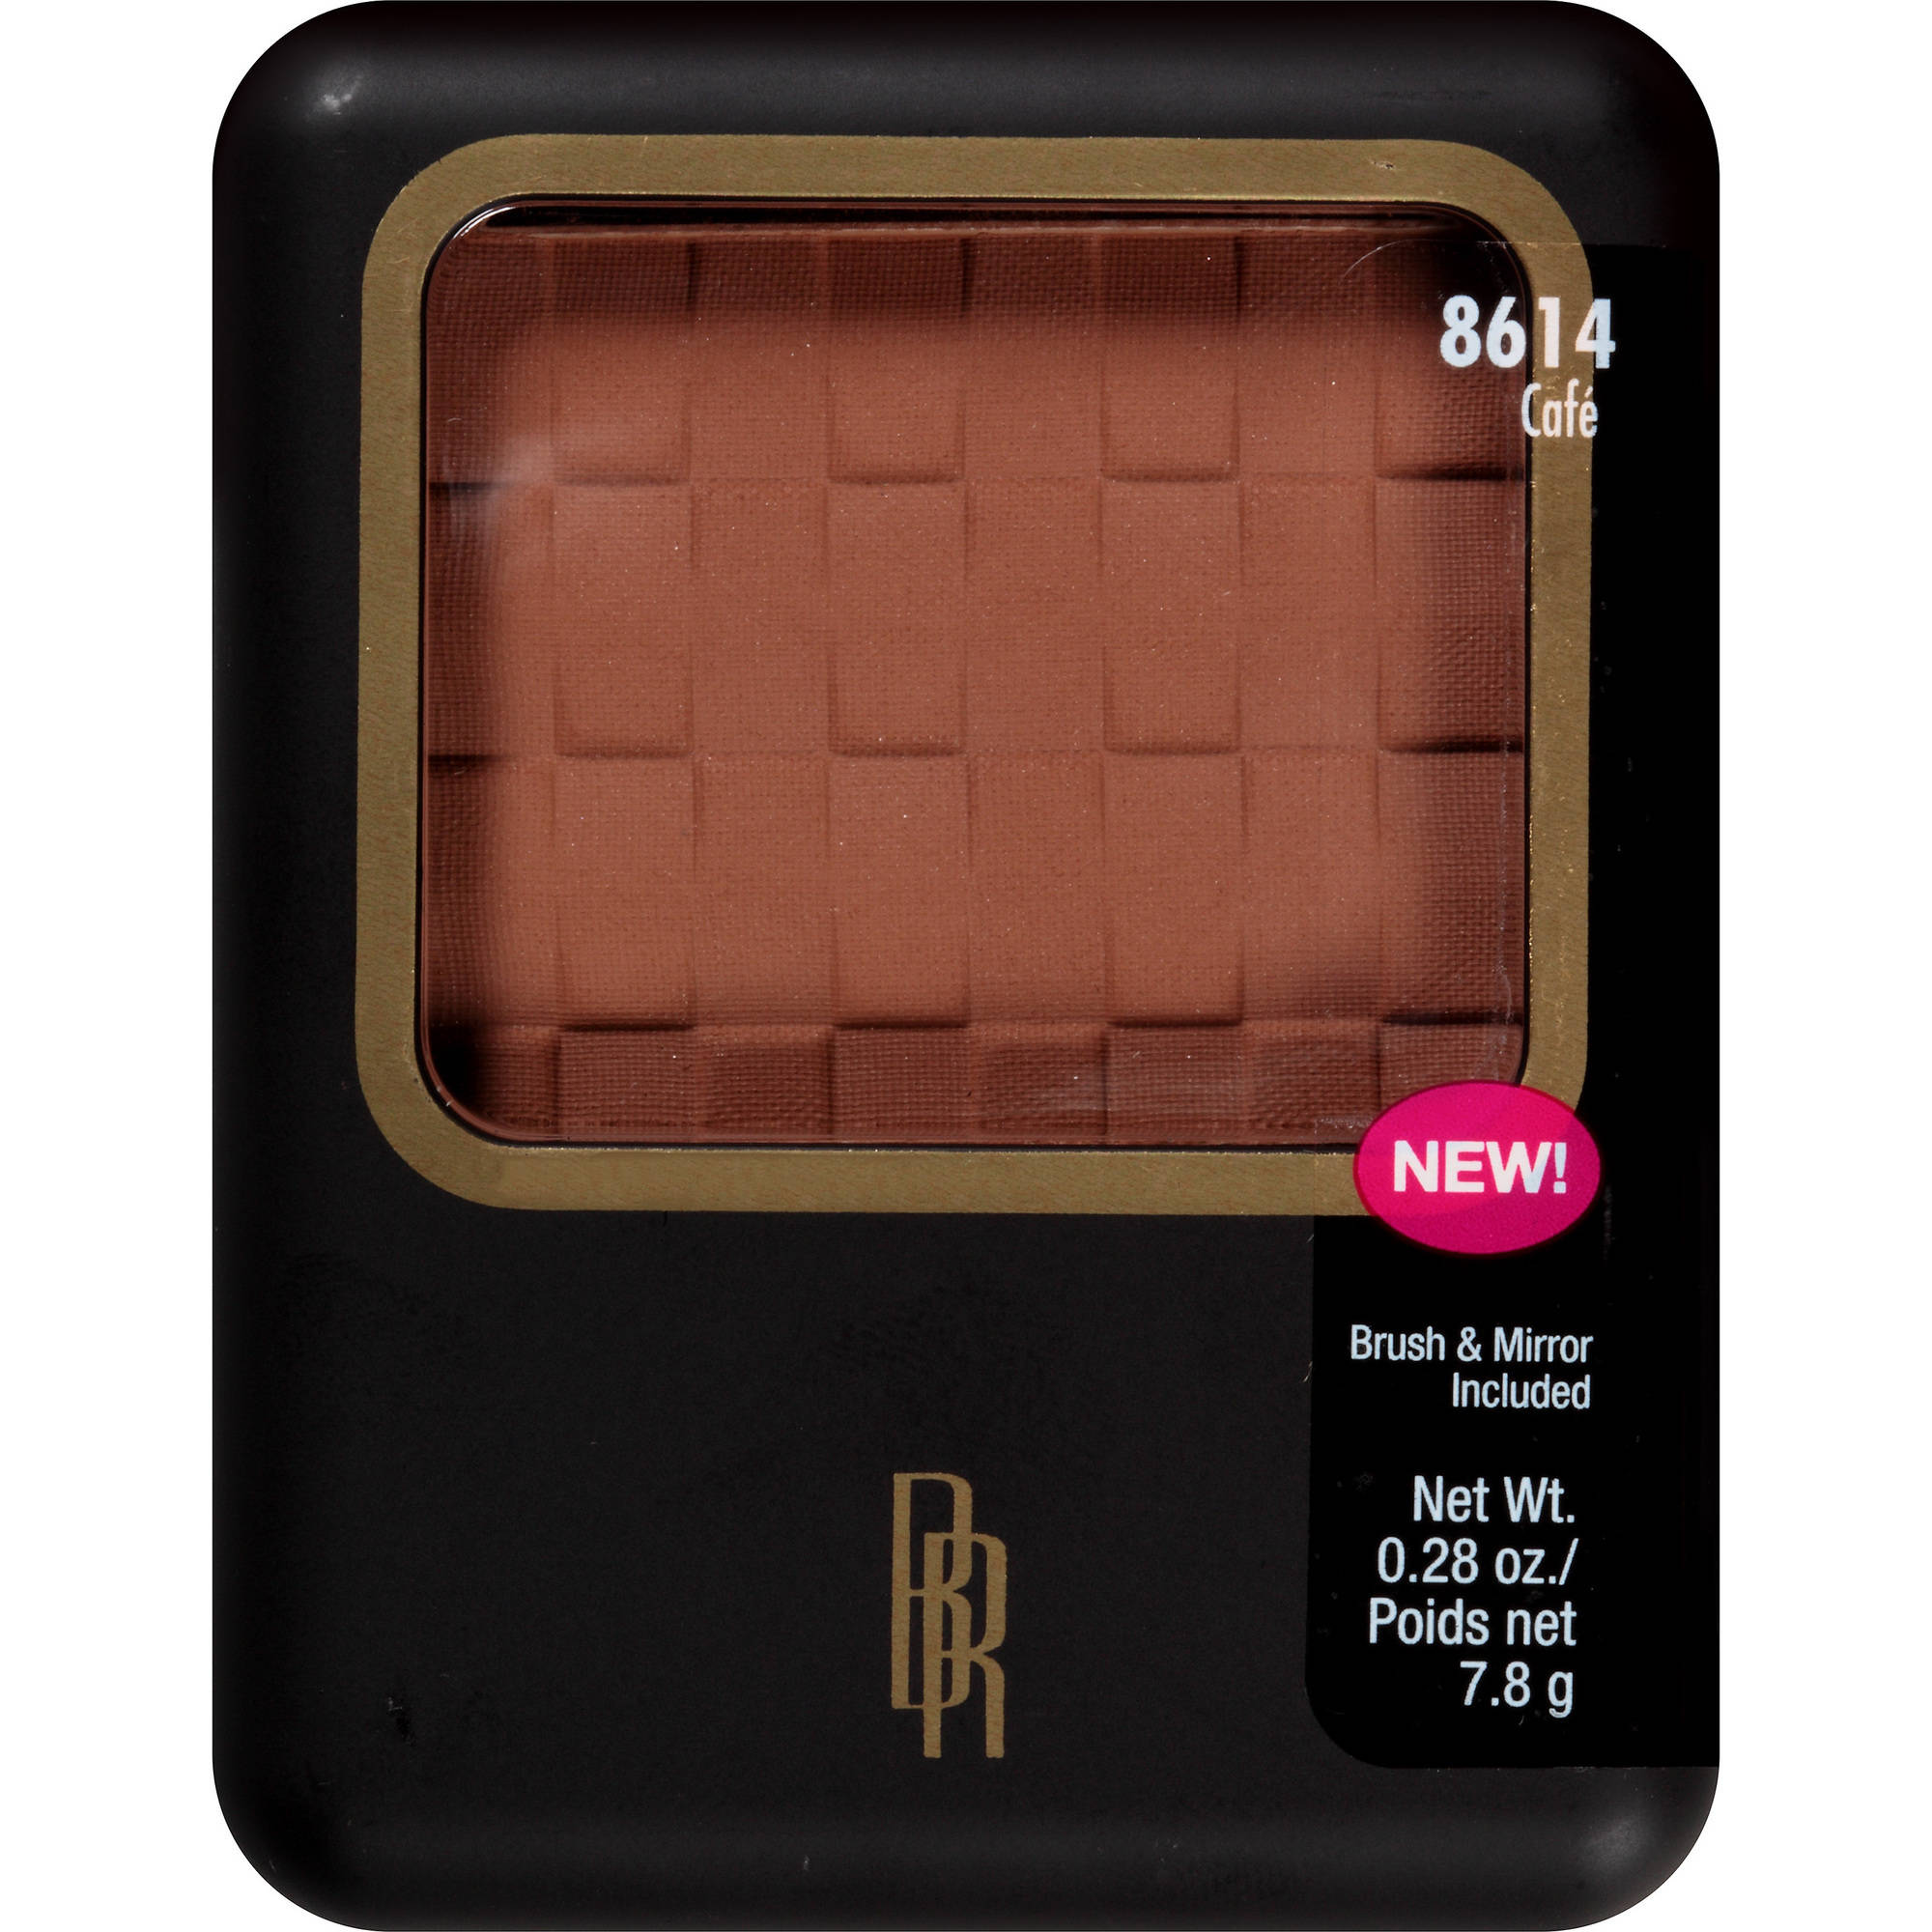 Black Radiance Pressed Facial Powder, Cafe, 0.28 oz